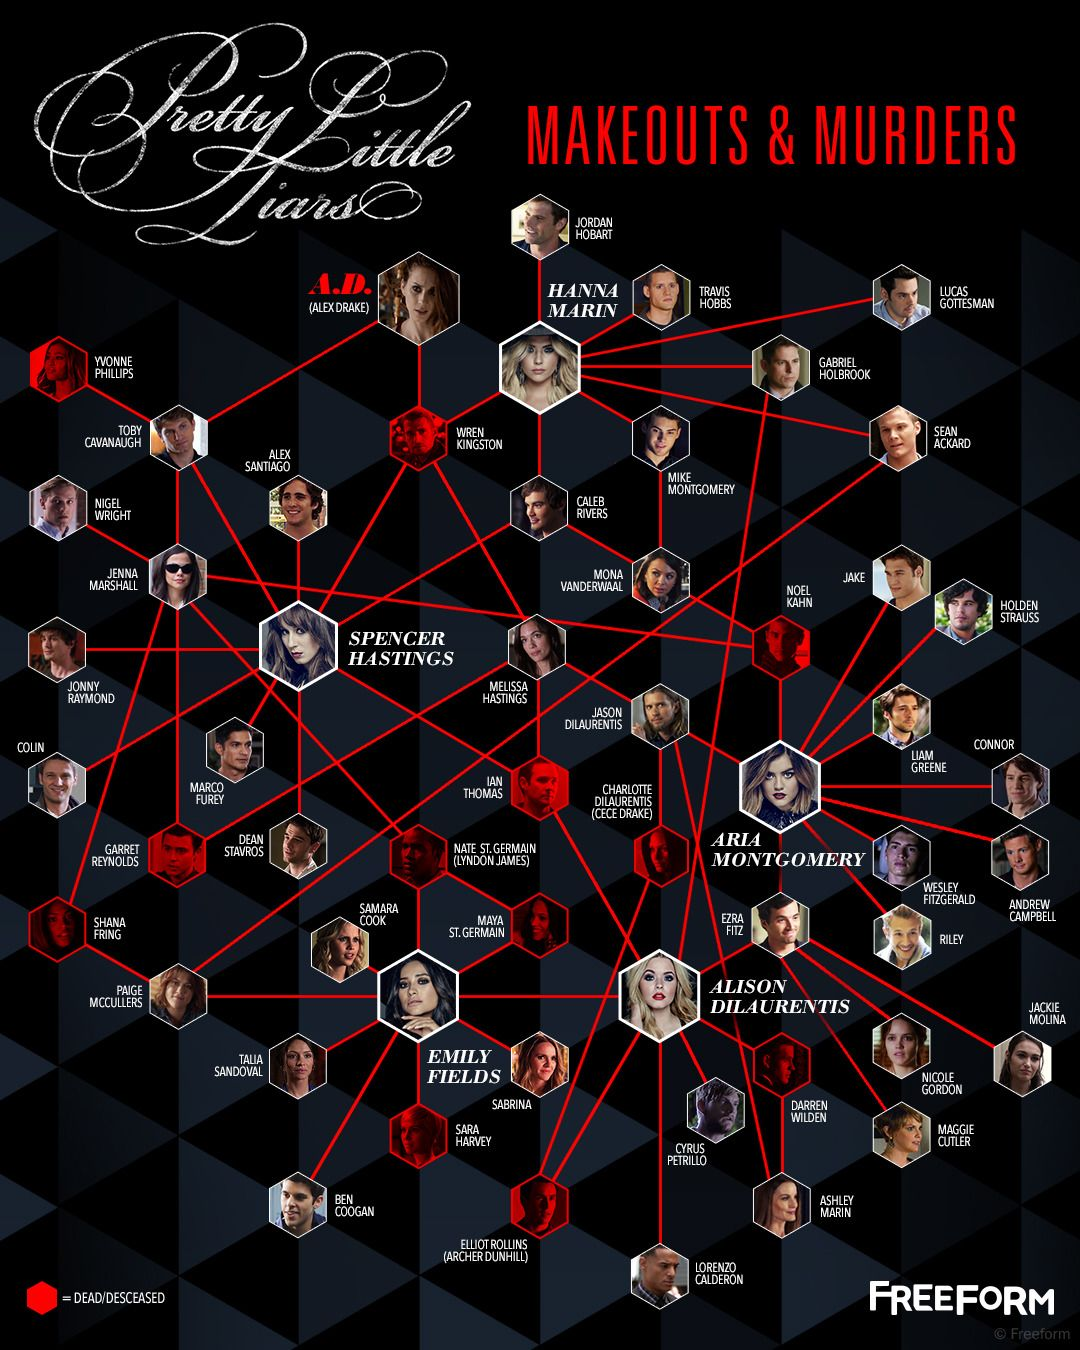 Every hookup + murder in Pretty Little Liars history has prepared us for this unveiling. Meet the only relationship chart you need to know about Rosewood. #seriesonnetflix